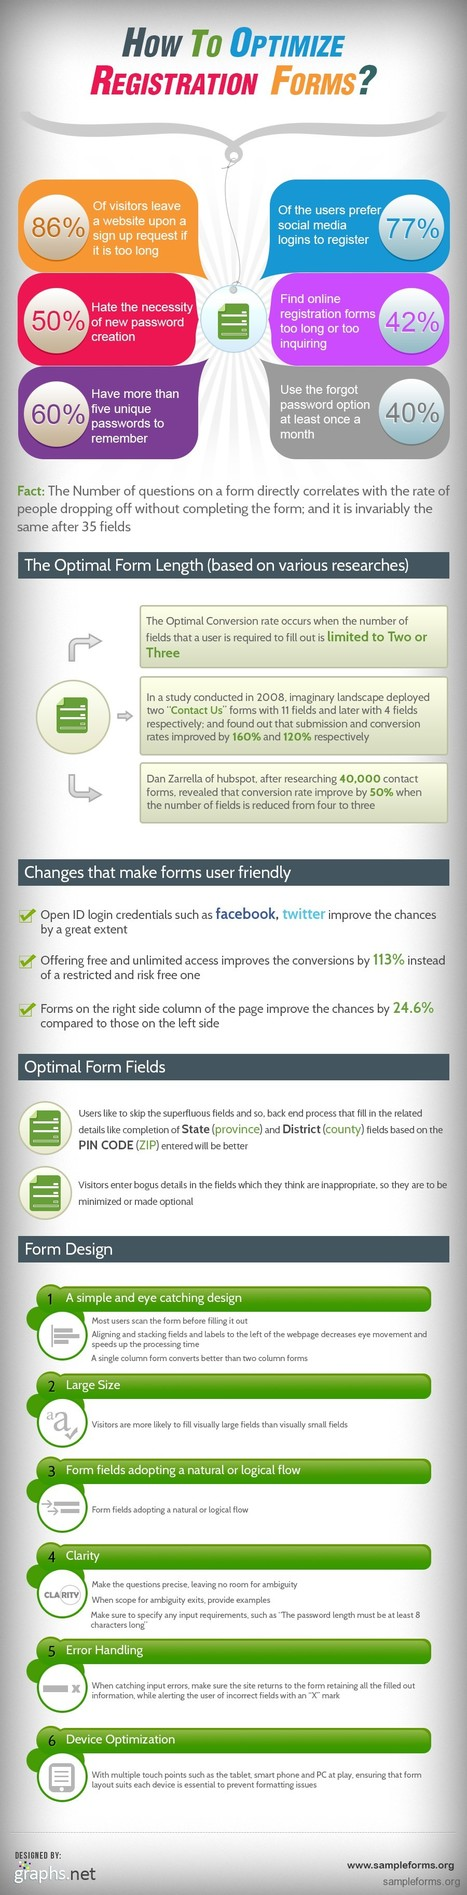 E-commerce Eye Candy – How to optimize registration forms [Infographic] | Building Keystones | Intentree - Australia's Online Optimizers | Scoop.it